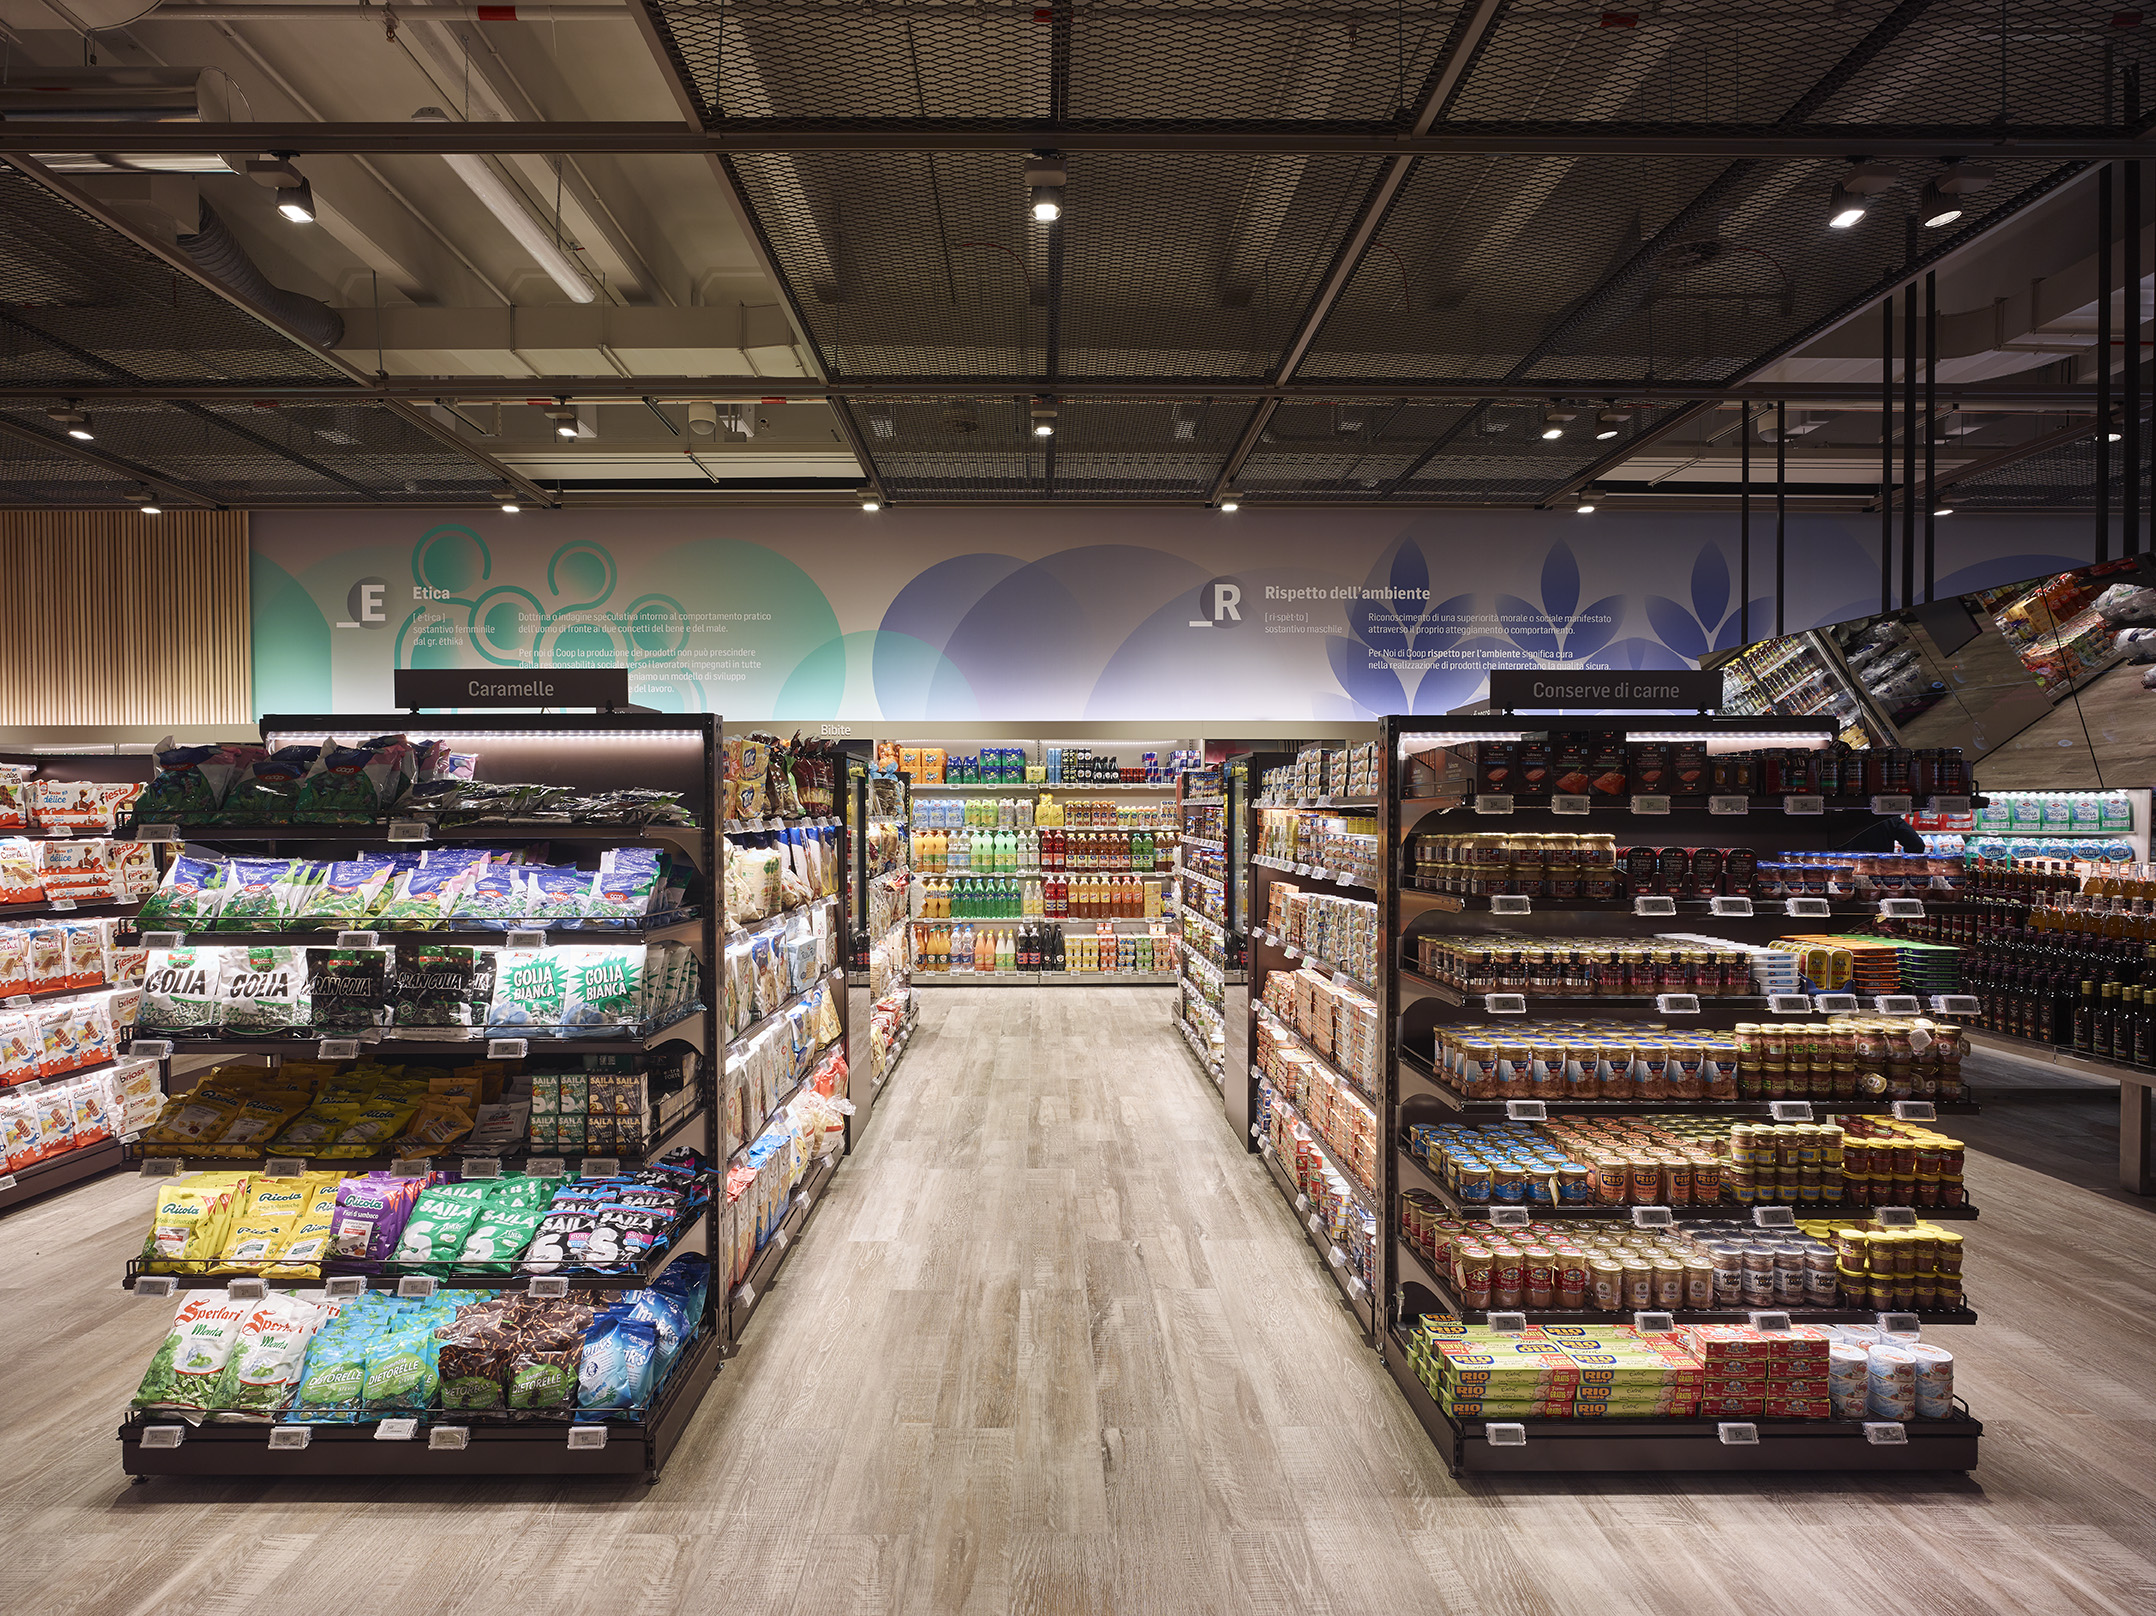 Milano, Bicocca Village - Il Supermercato interattivo (courtesy photo: Imoon)